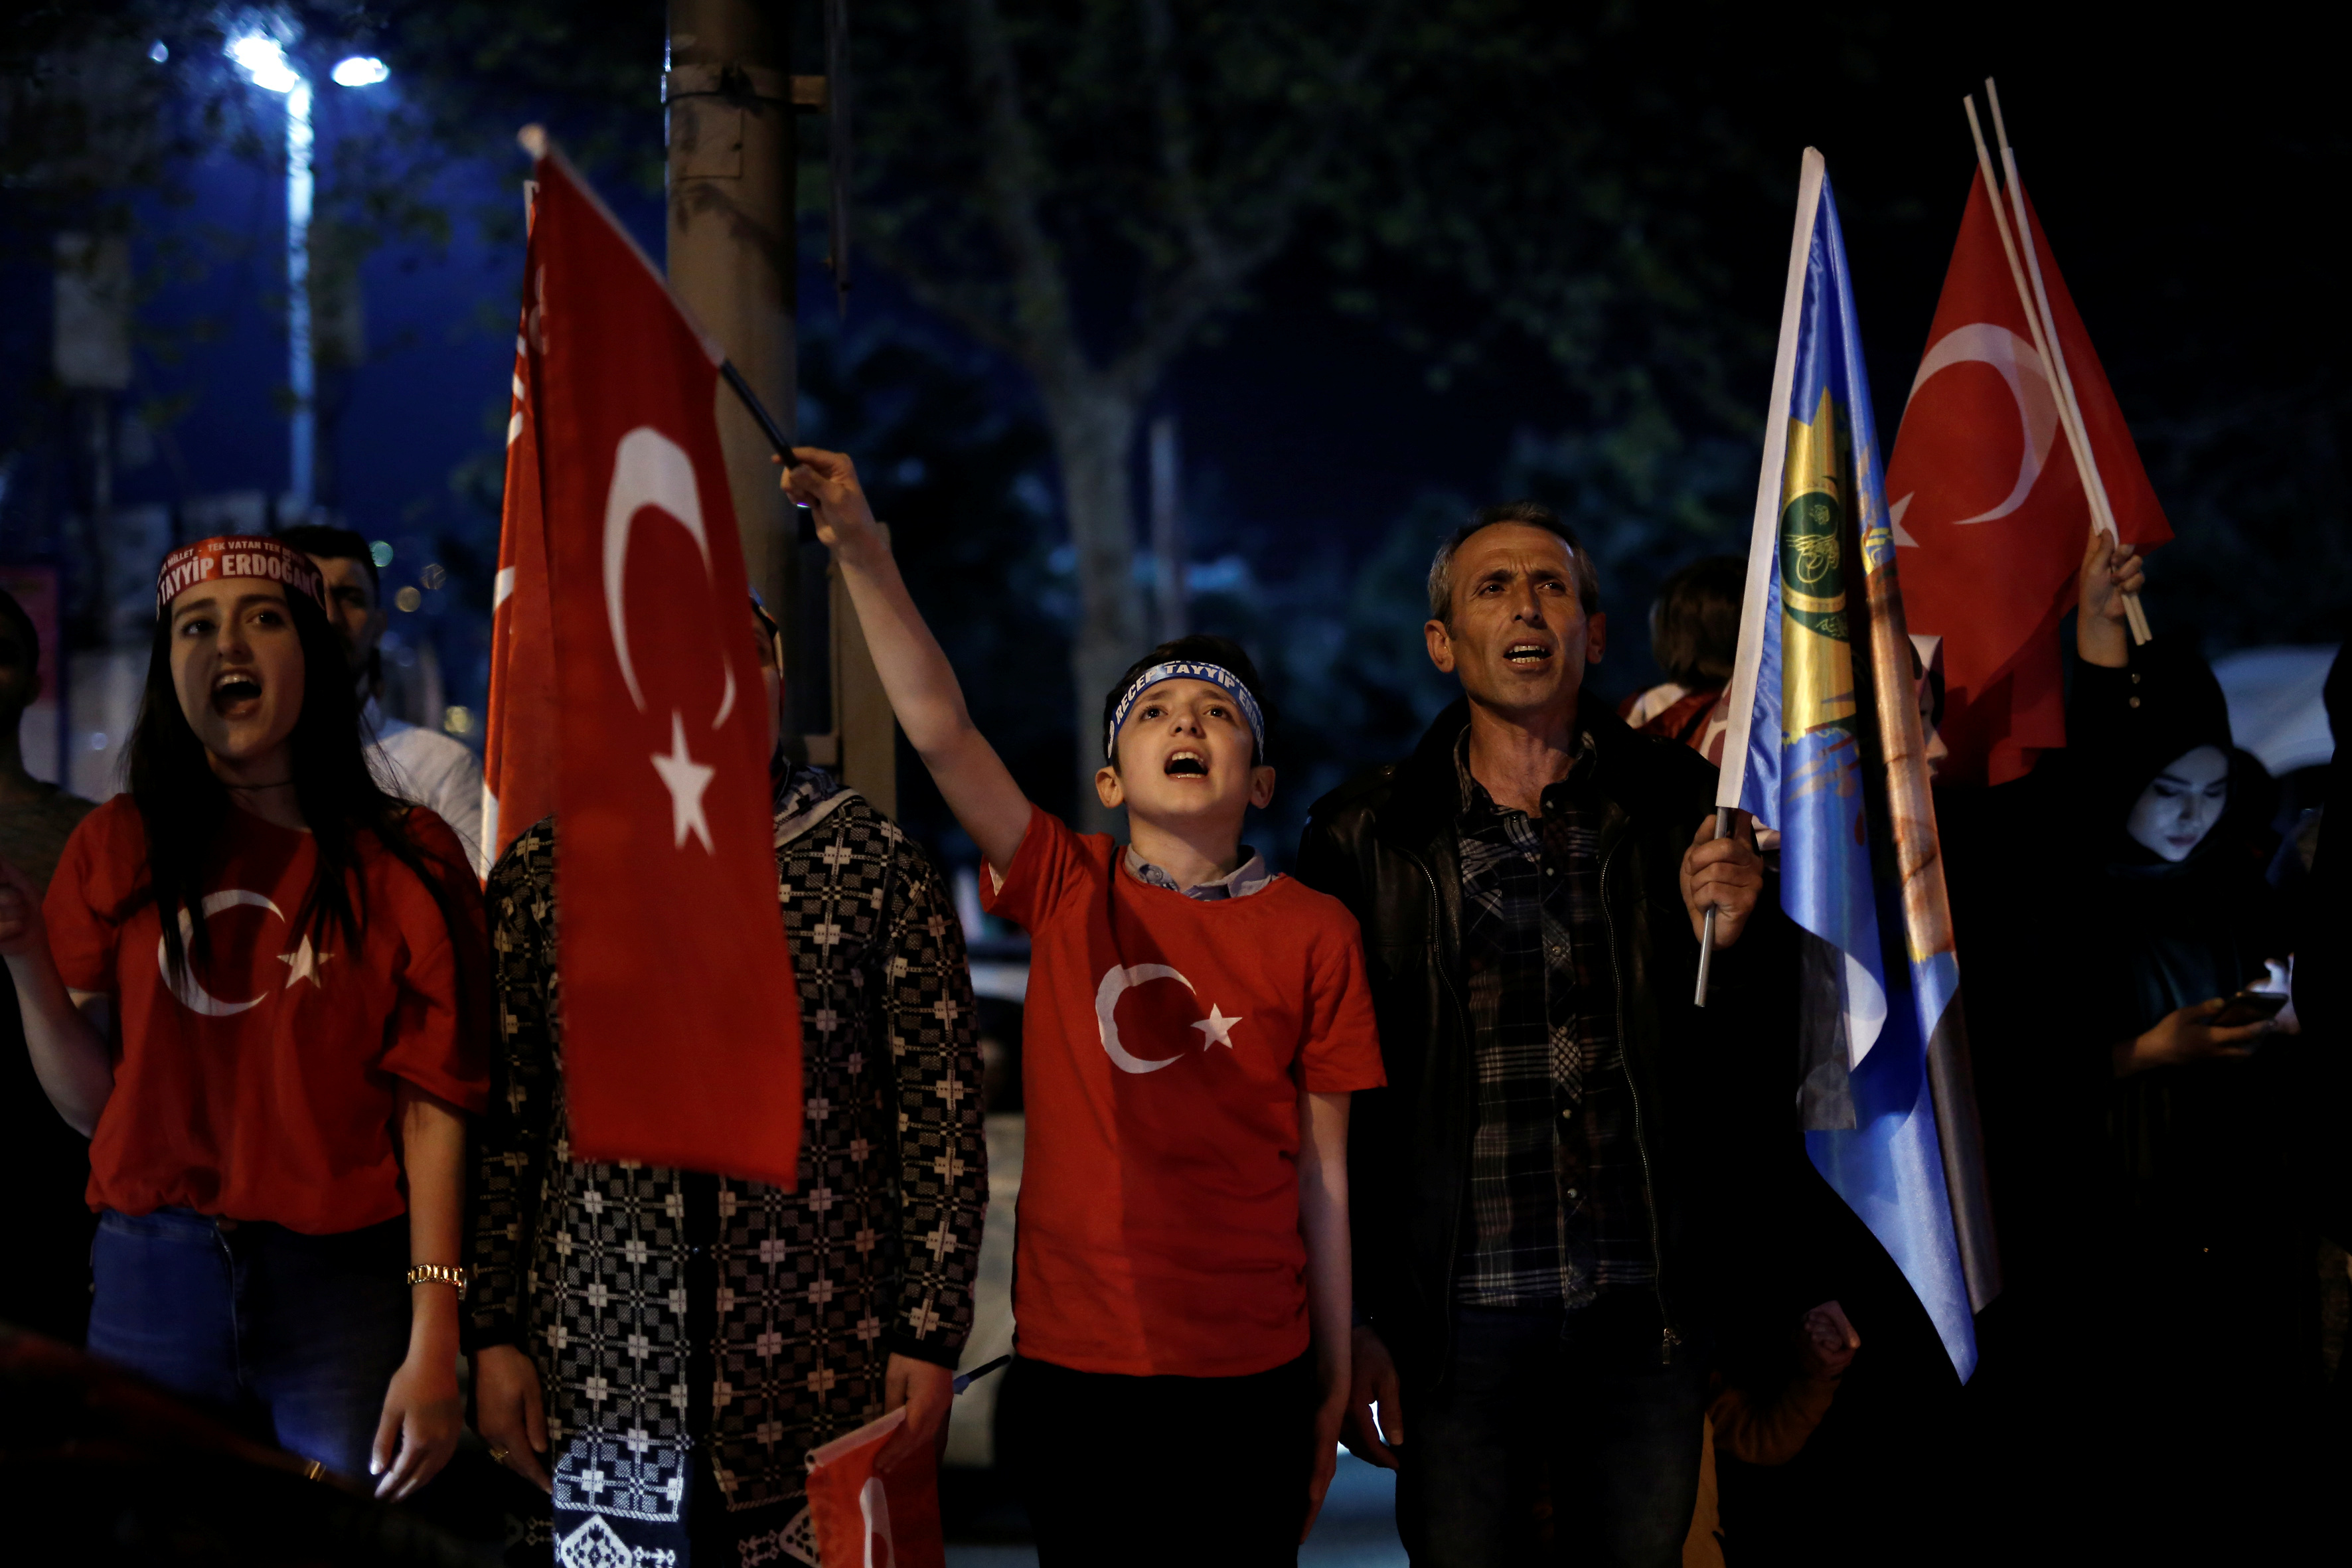 Supporters of Turkish President Tayyip Erdogan chant the national anthem as they celebrate in Istanbul. (REUTERS/Alkis Konstantinidis)